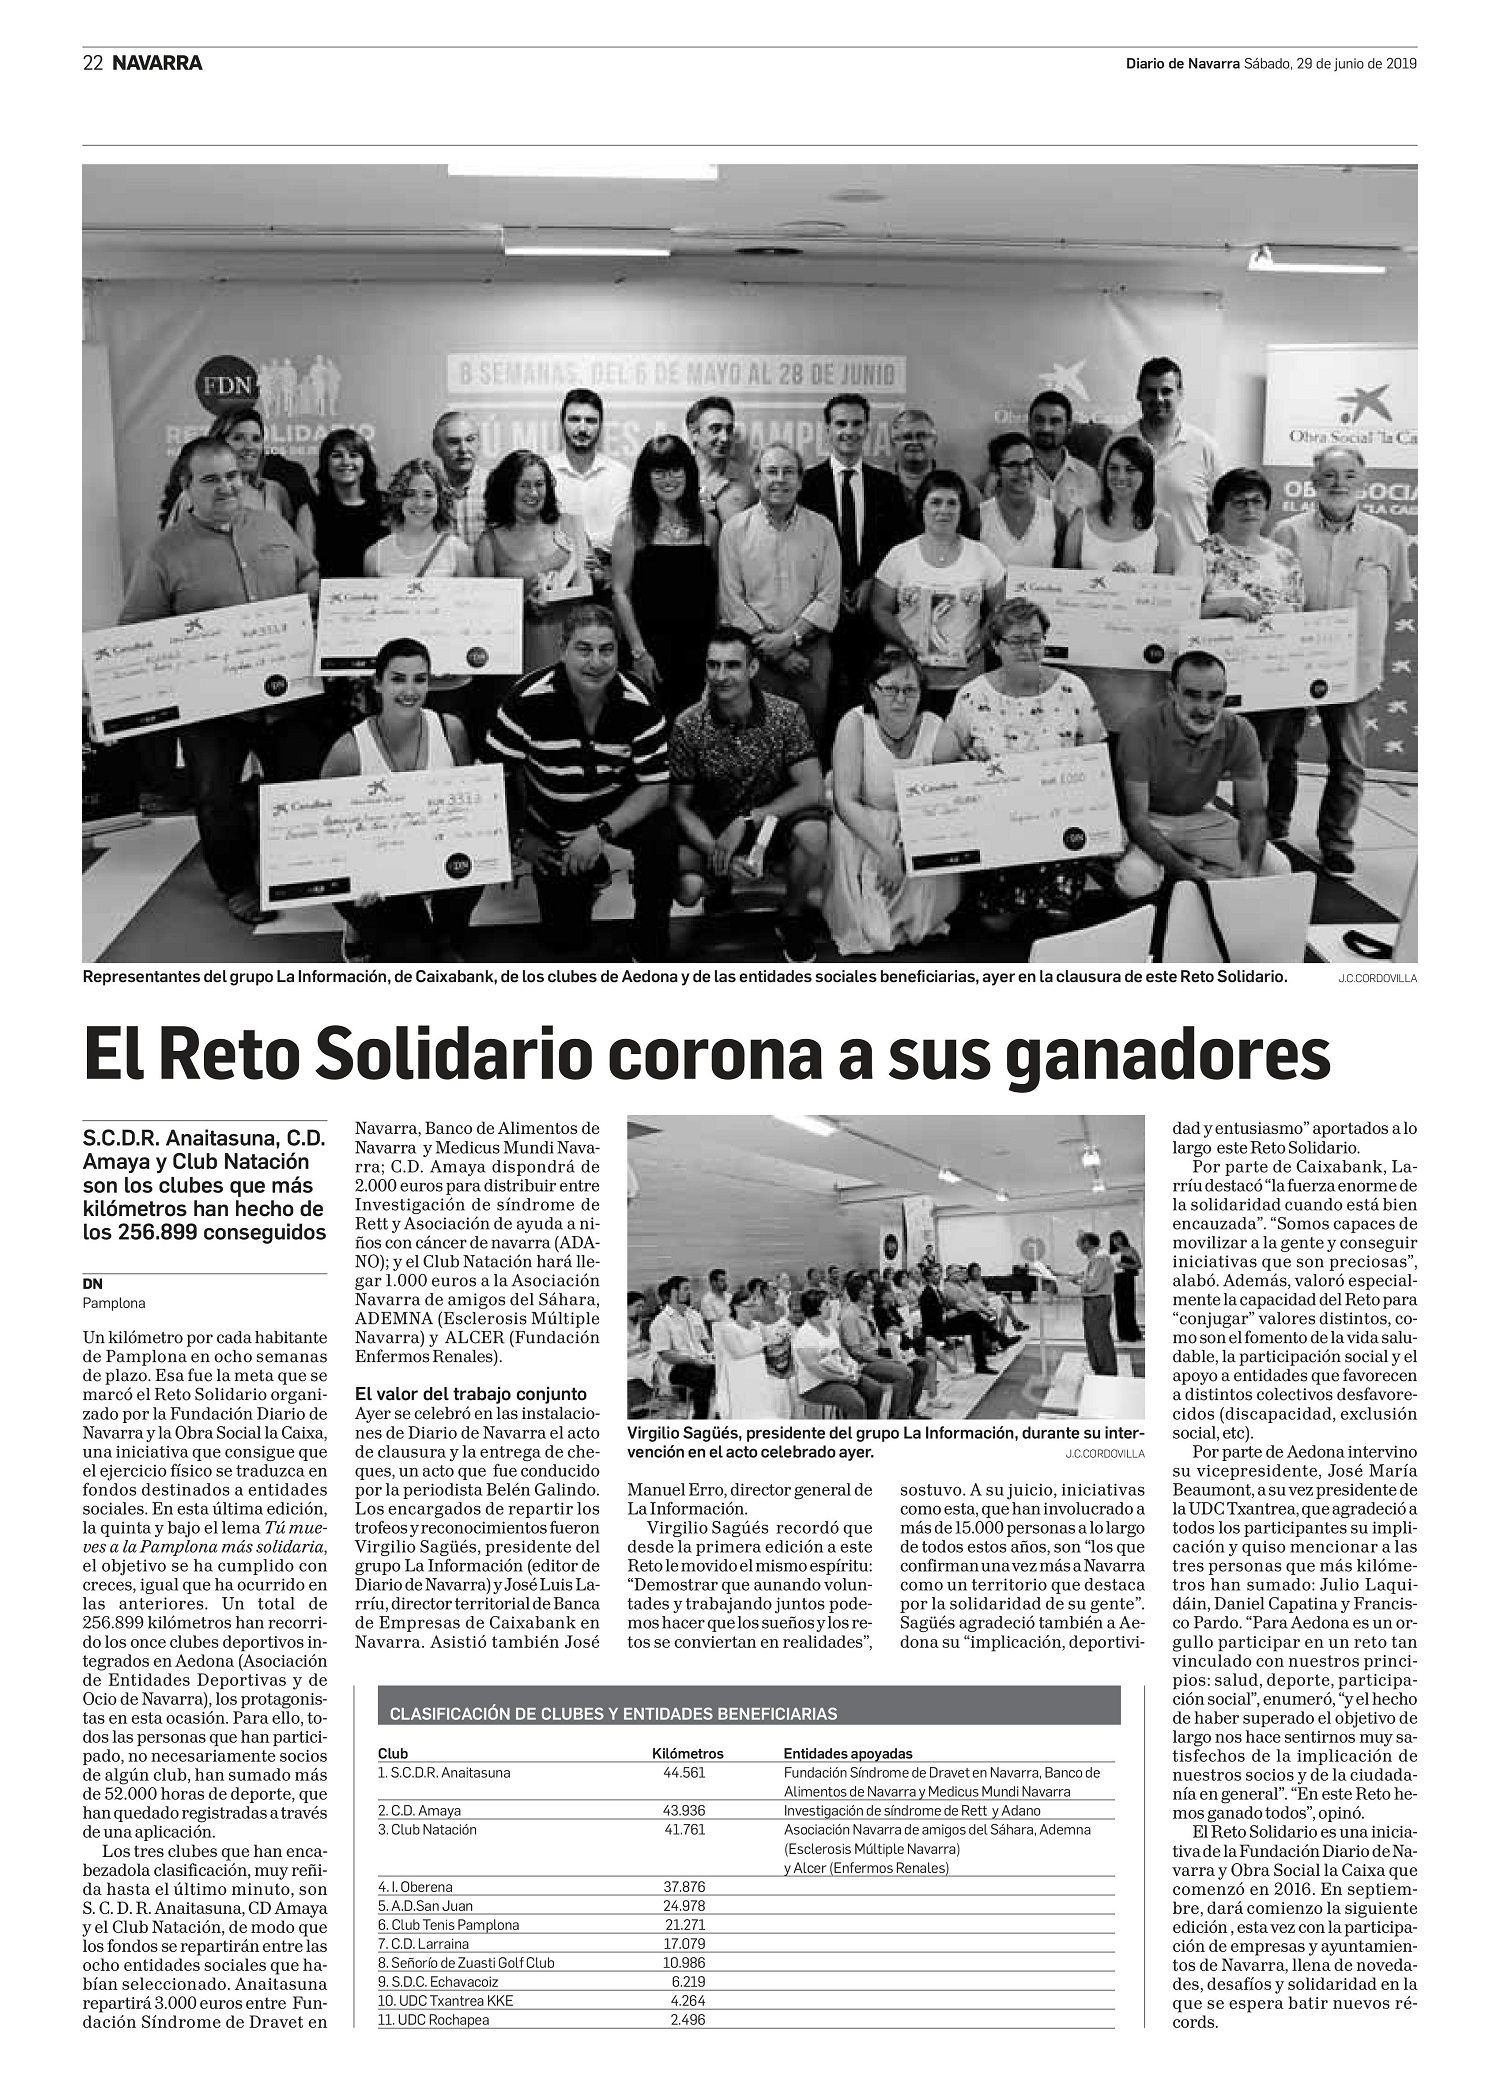 2019_06_29 noticia clausura